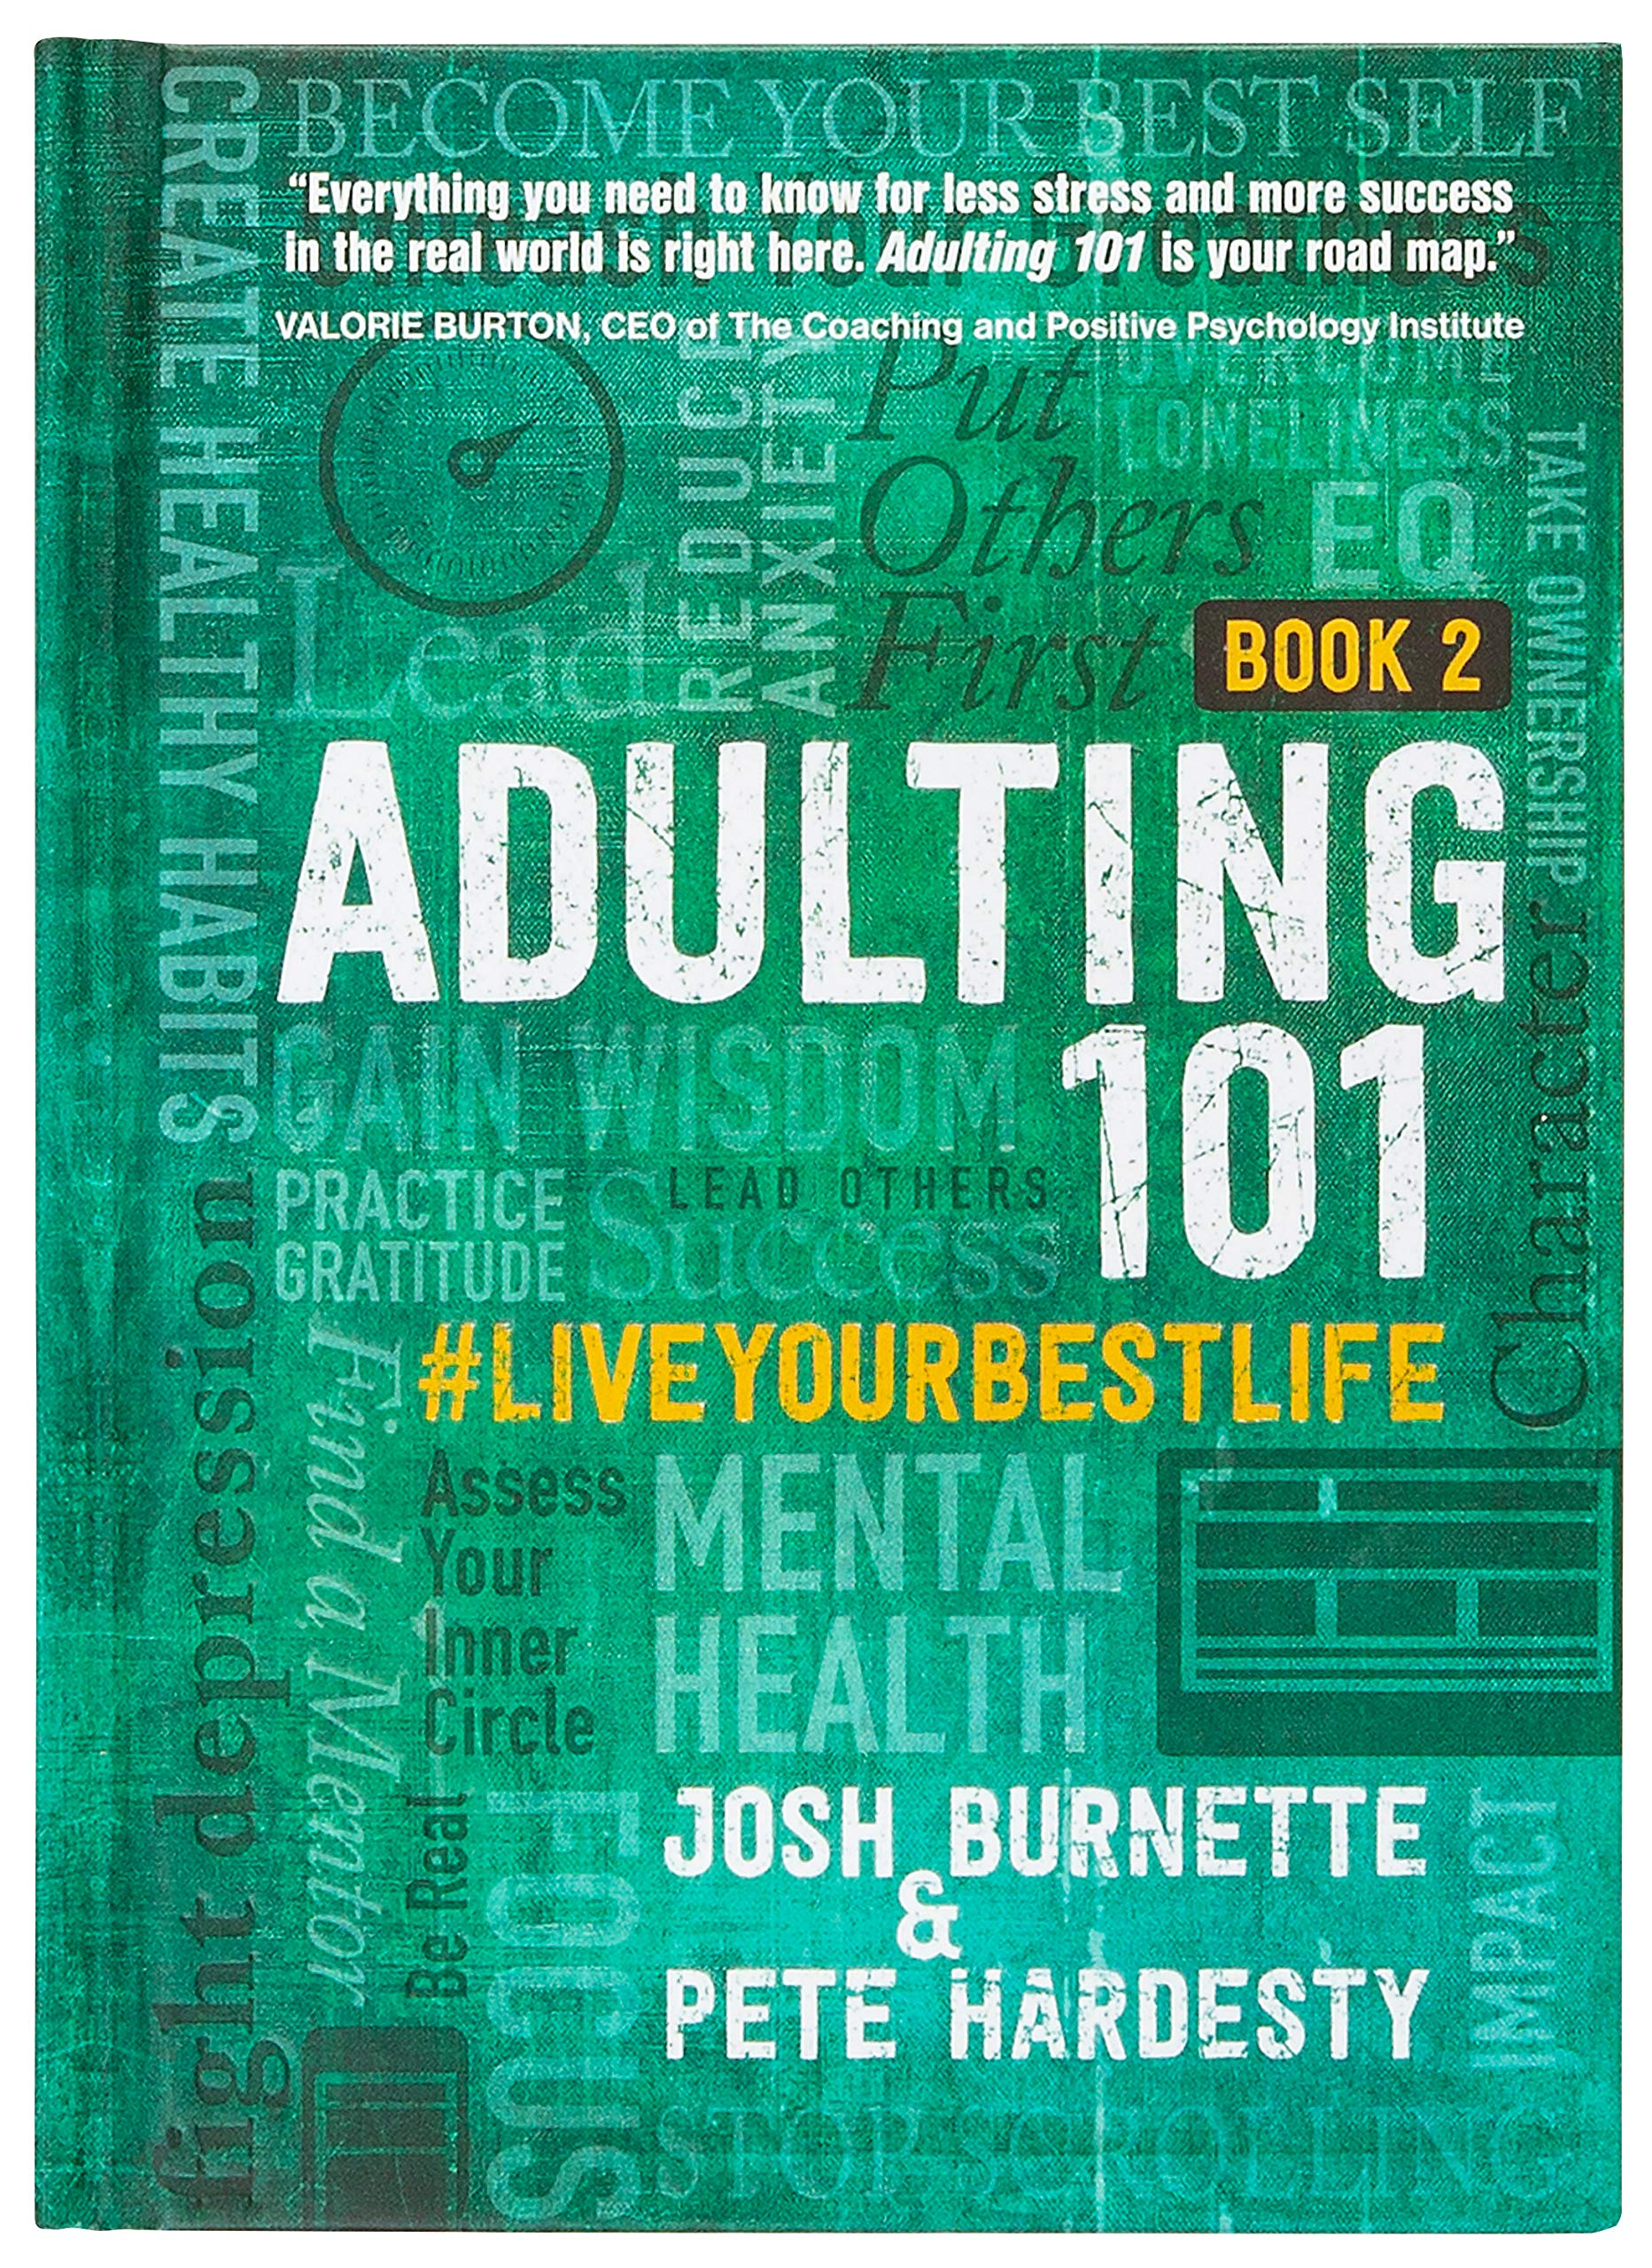 10 self-help books for young adults to get their life together